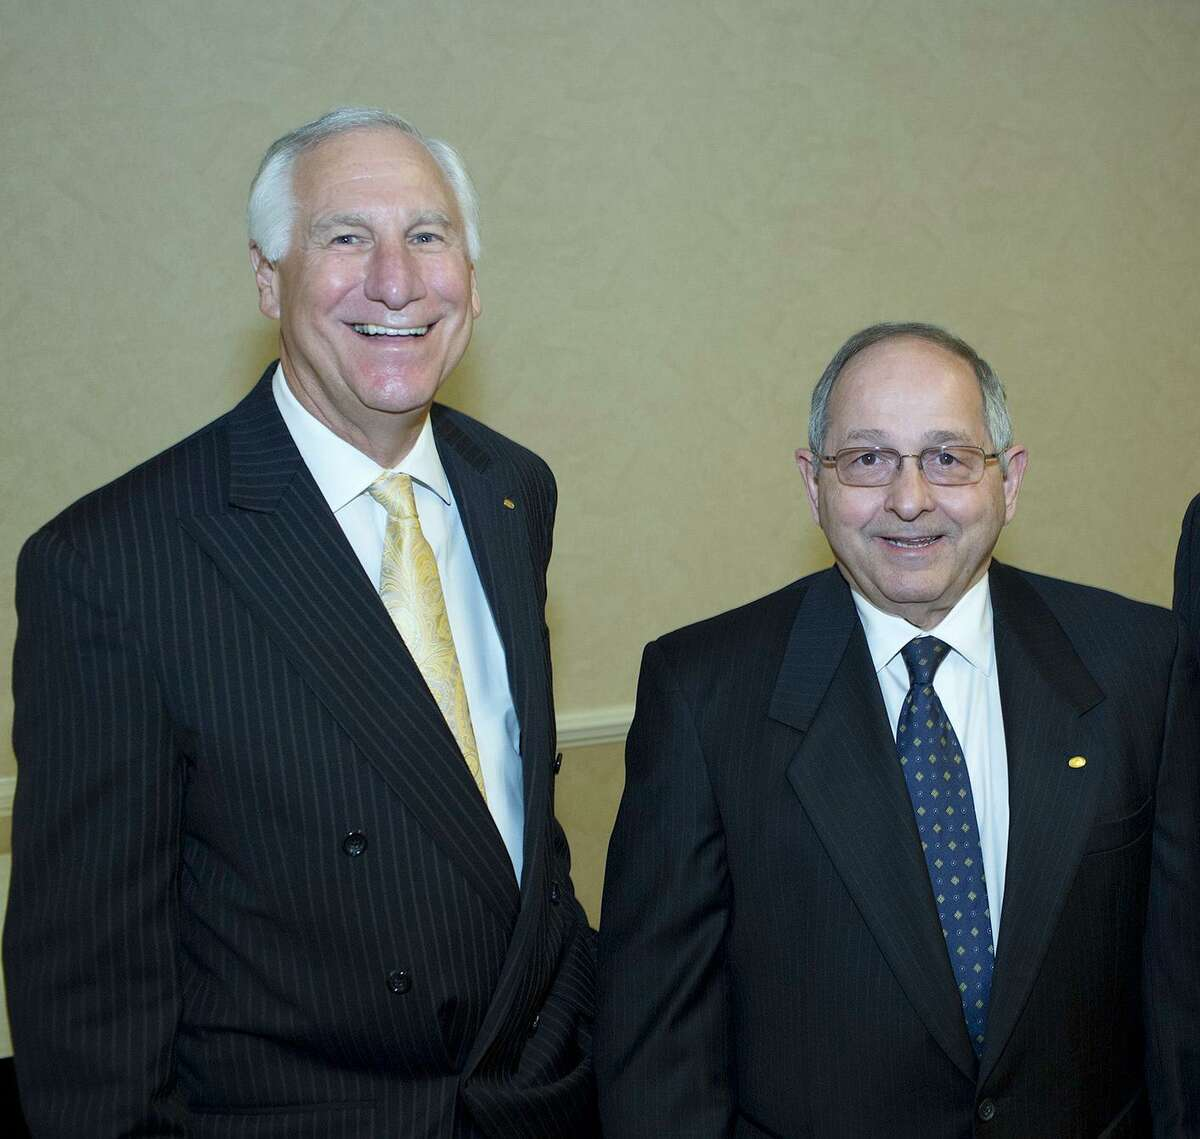 SWBC Chairman Charlie Amato and President Gary Dudley founded the financial services company in 1976. The firm has cut less than 2 percent of its 2,600-person workforce.